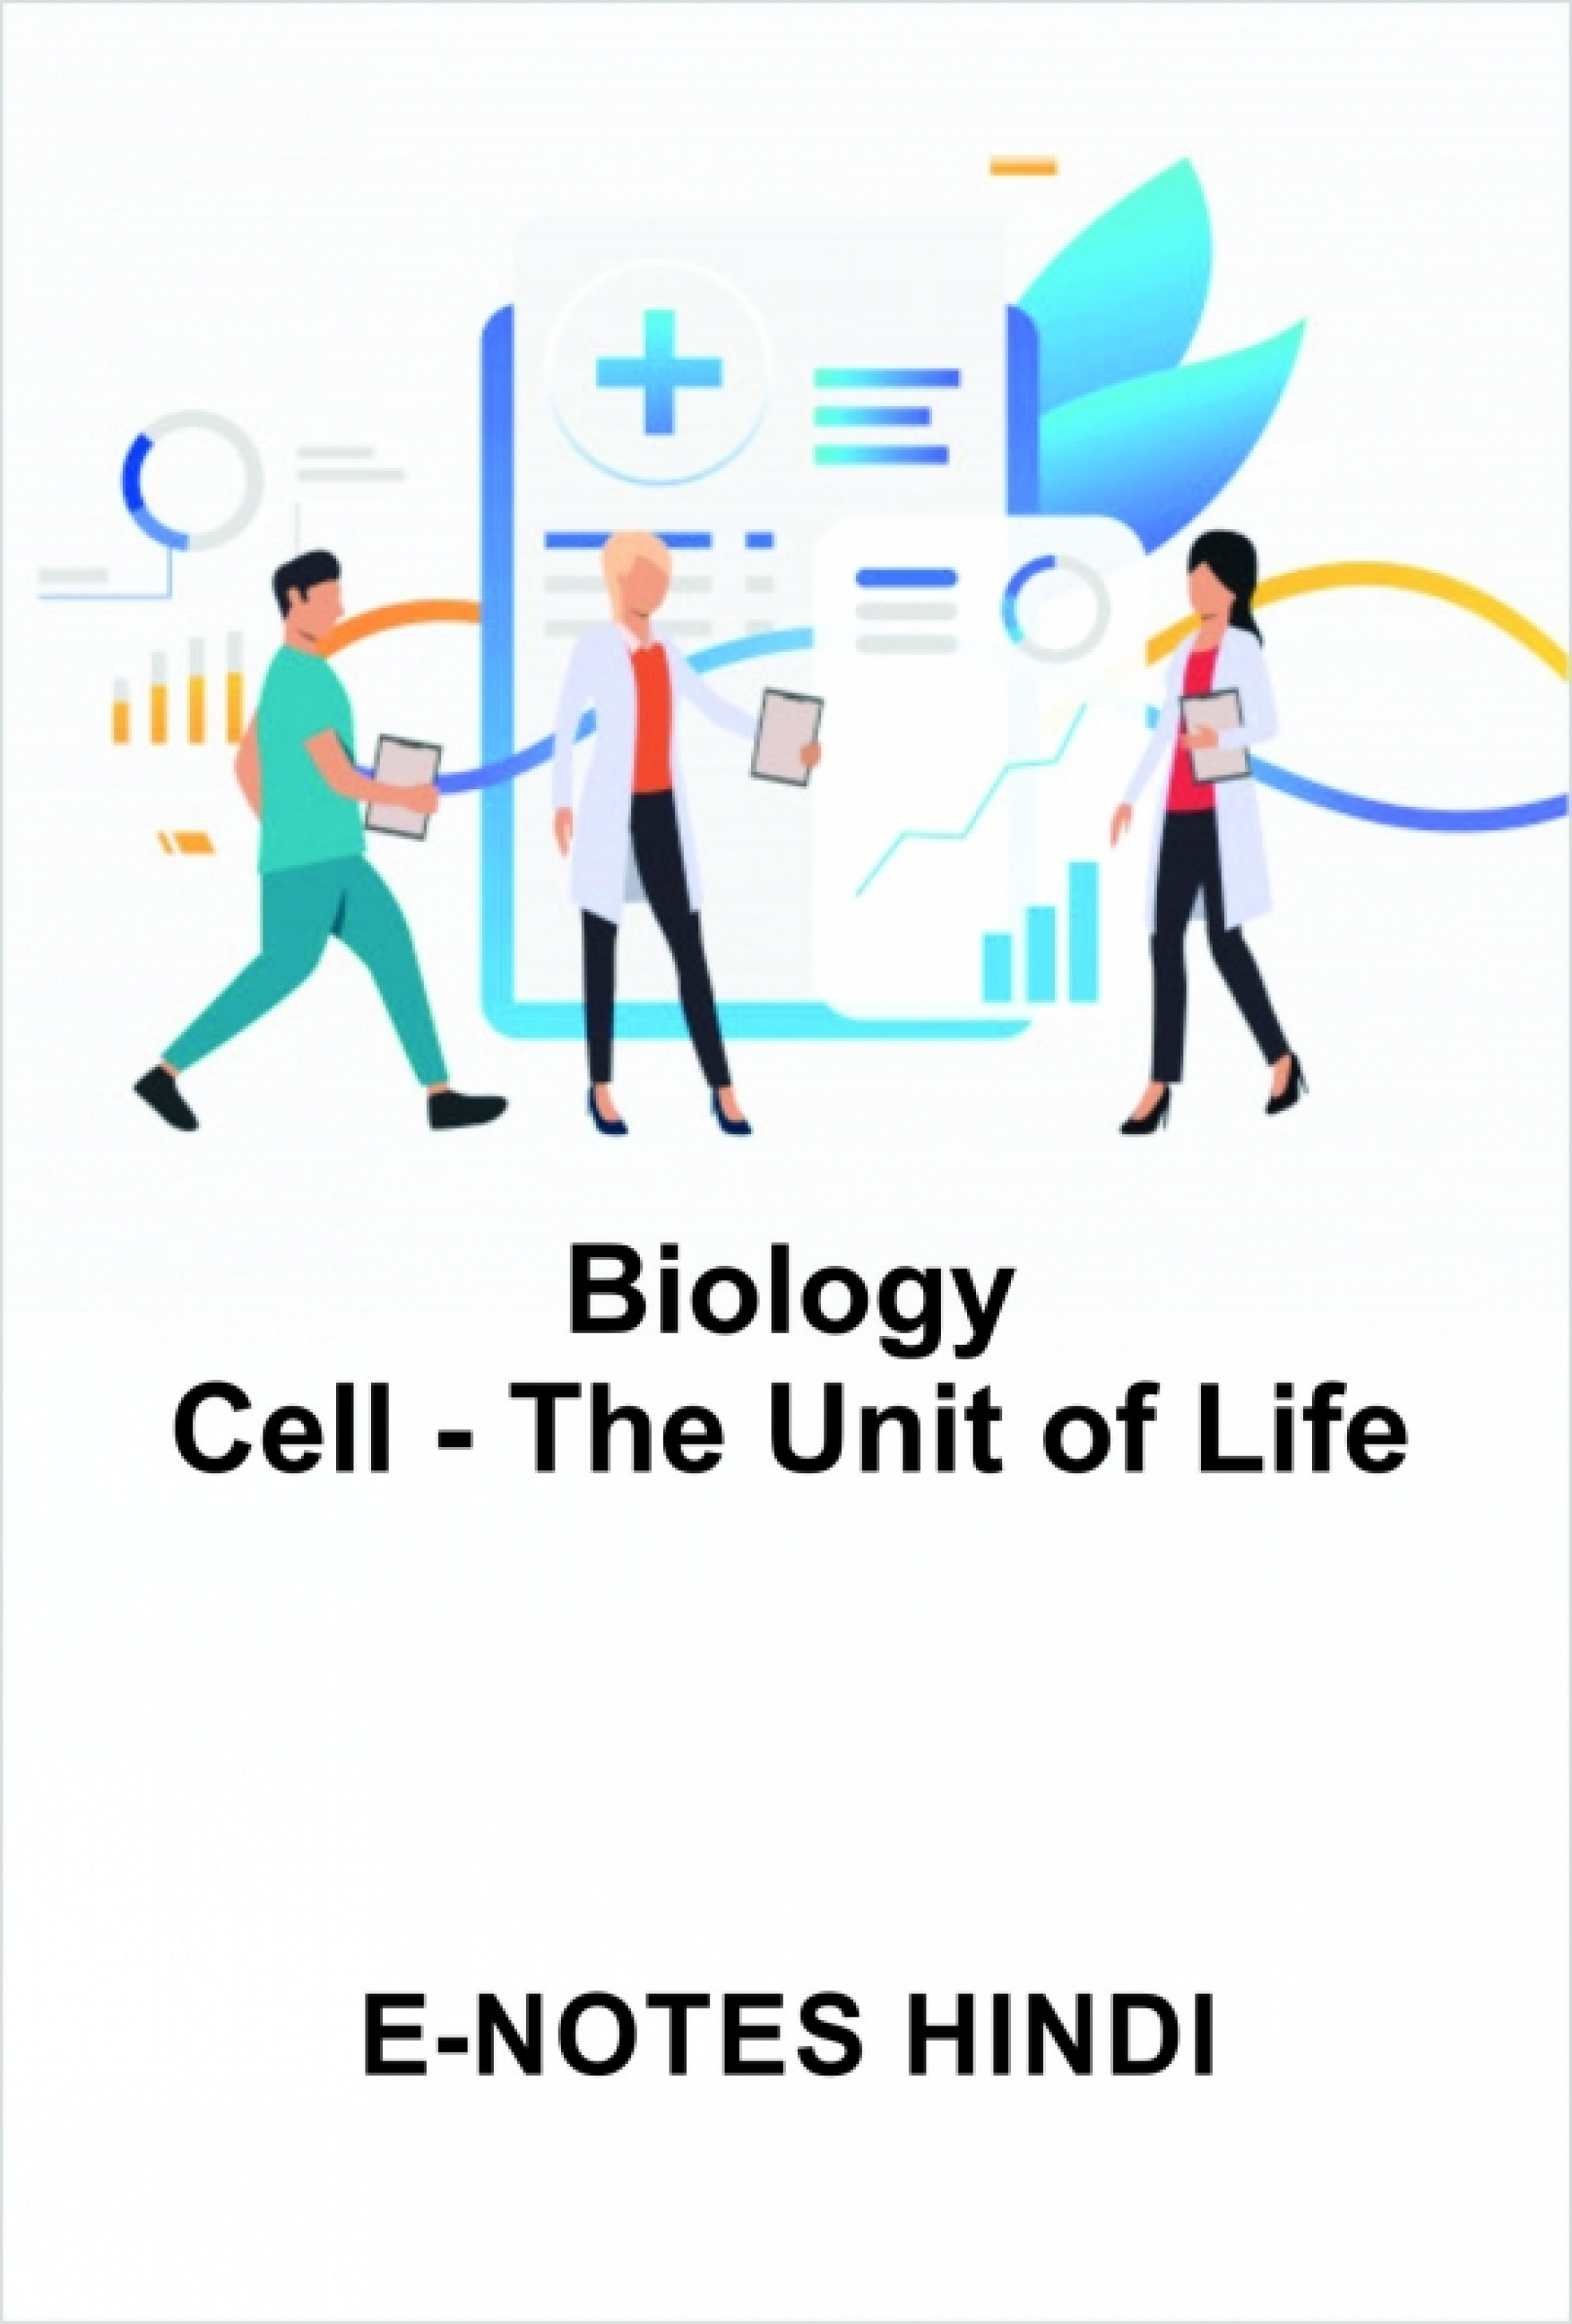 Hindi_Cell - The Unit of Life